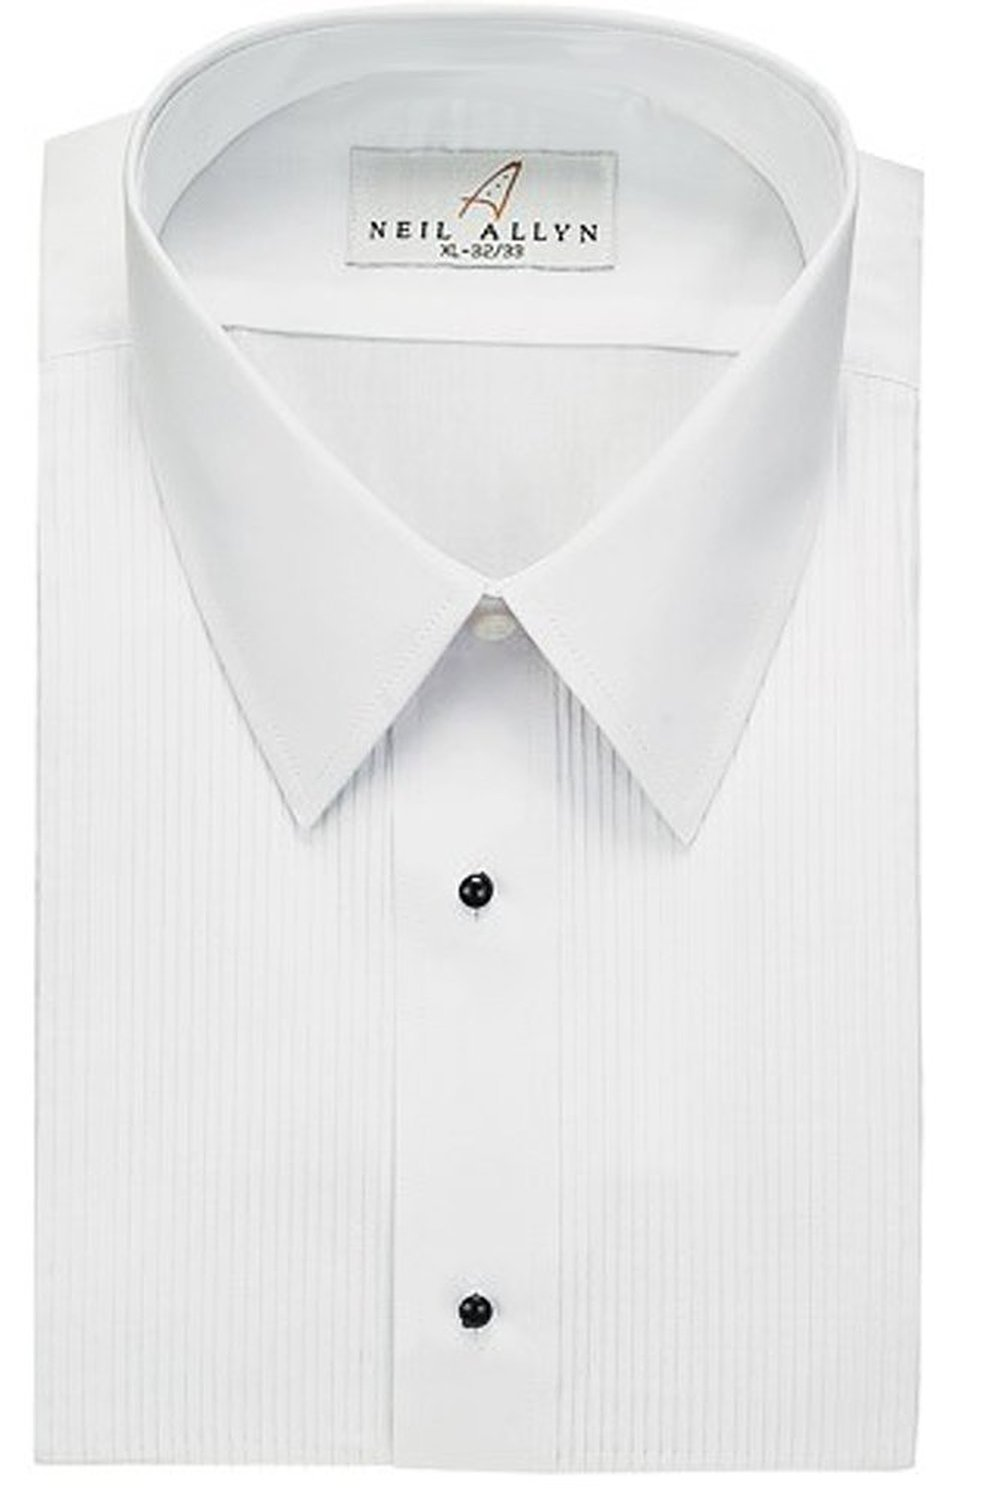 Tuxedo Shirt - Laydown Collar 1/8 Inch Pleat Laydown Collar (16.5 - 36/37)